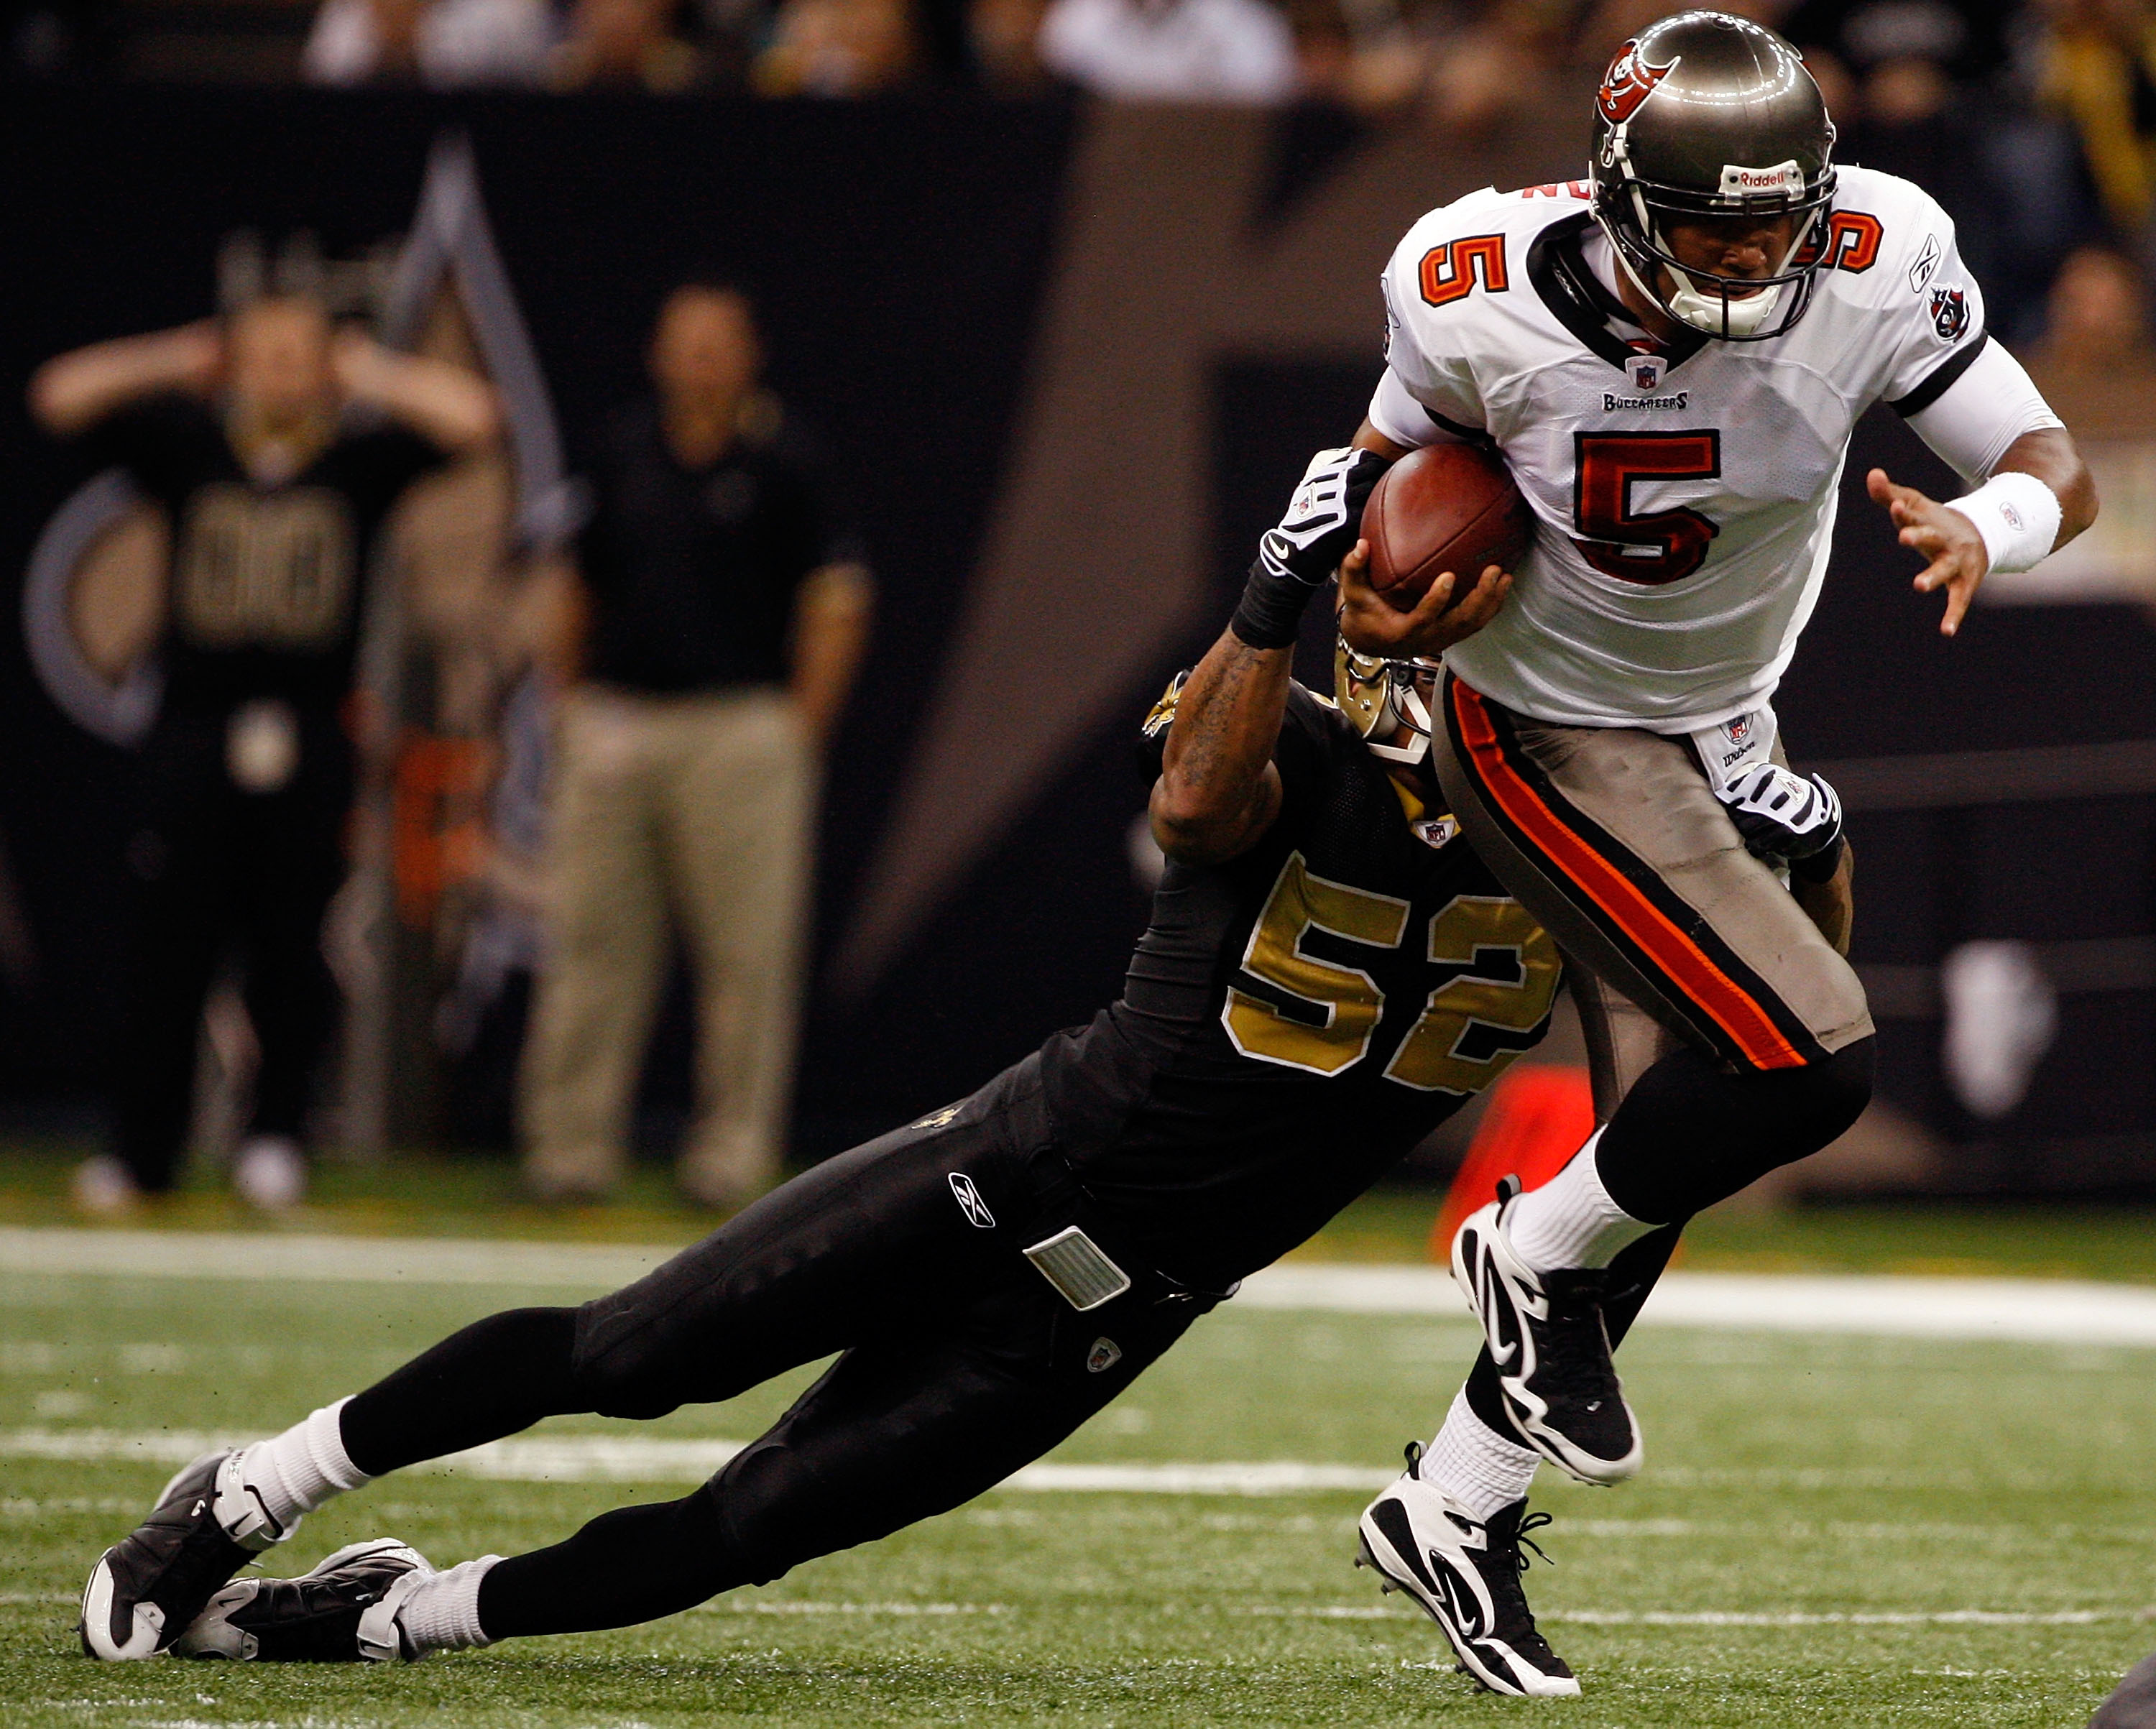 NEW ORLEANS - DECEMBER 27:  Quarterback Josh Freeman #5 of the Tampa Bay Buccaneers is sacked by Jonathan Casillas #52 of the New Orleans Saints at the Louisiana Superdome on December 27, 2009 in New Orleans, Louisiana.  (Photo by Chris Graythen/Getty Ima